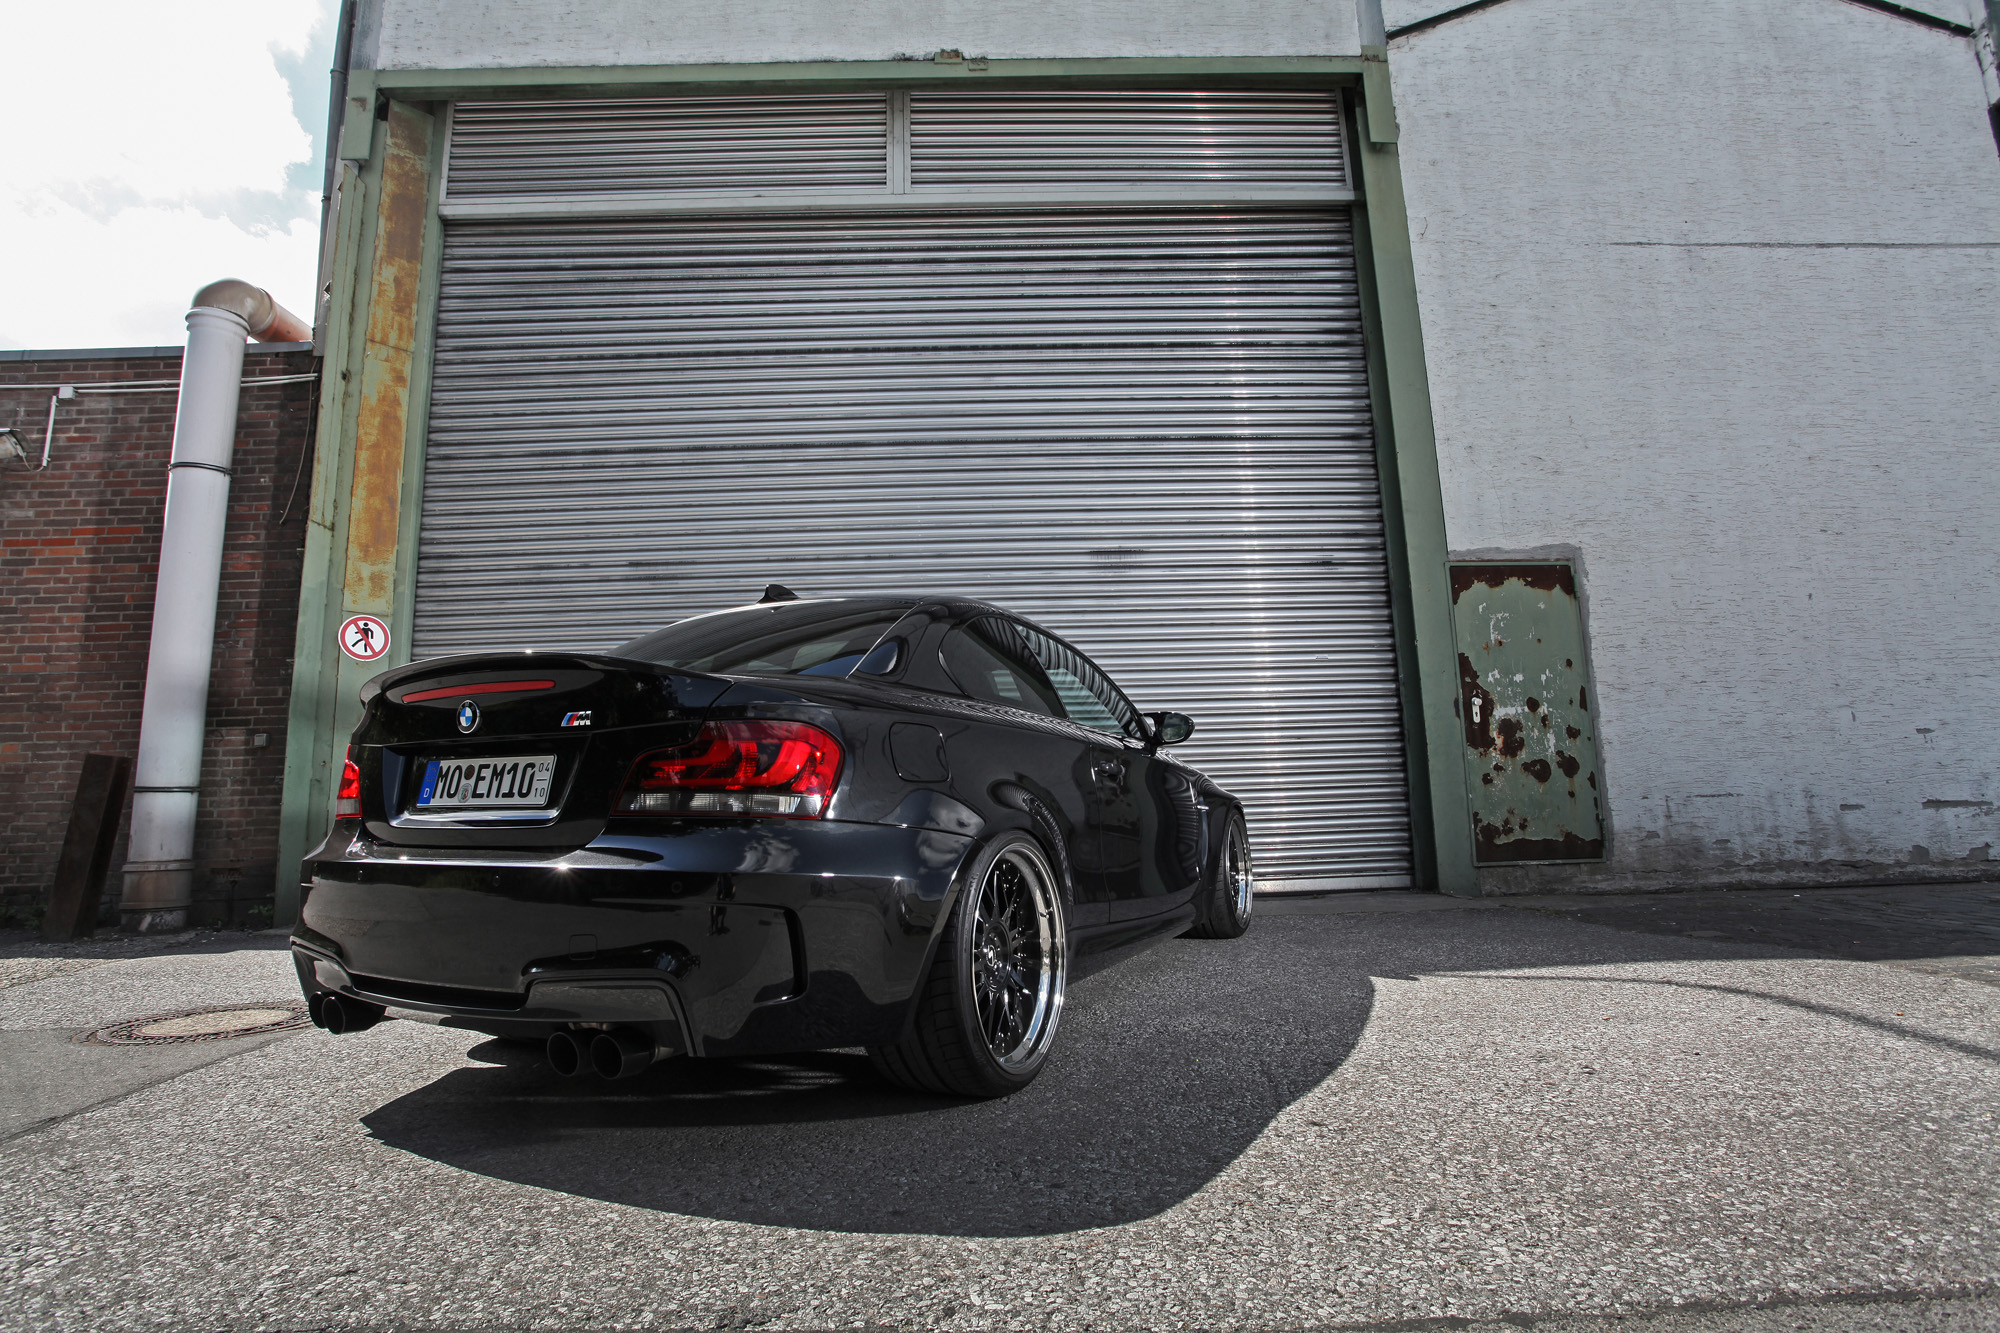 bmw-1er-m-coupé-e82-ok-chiptuning-14